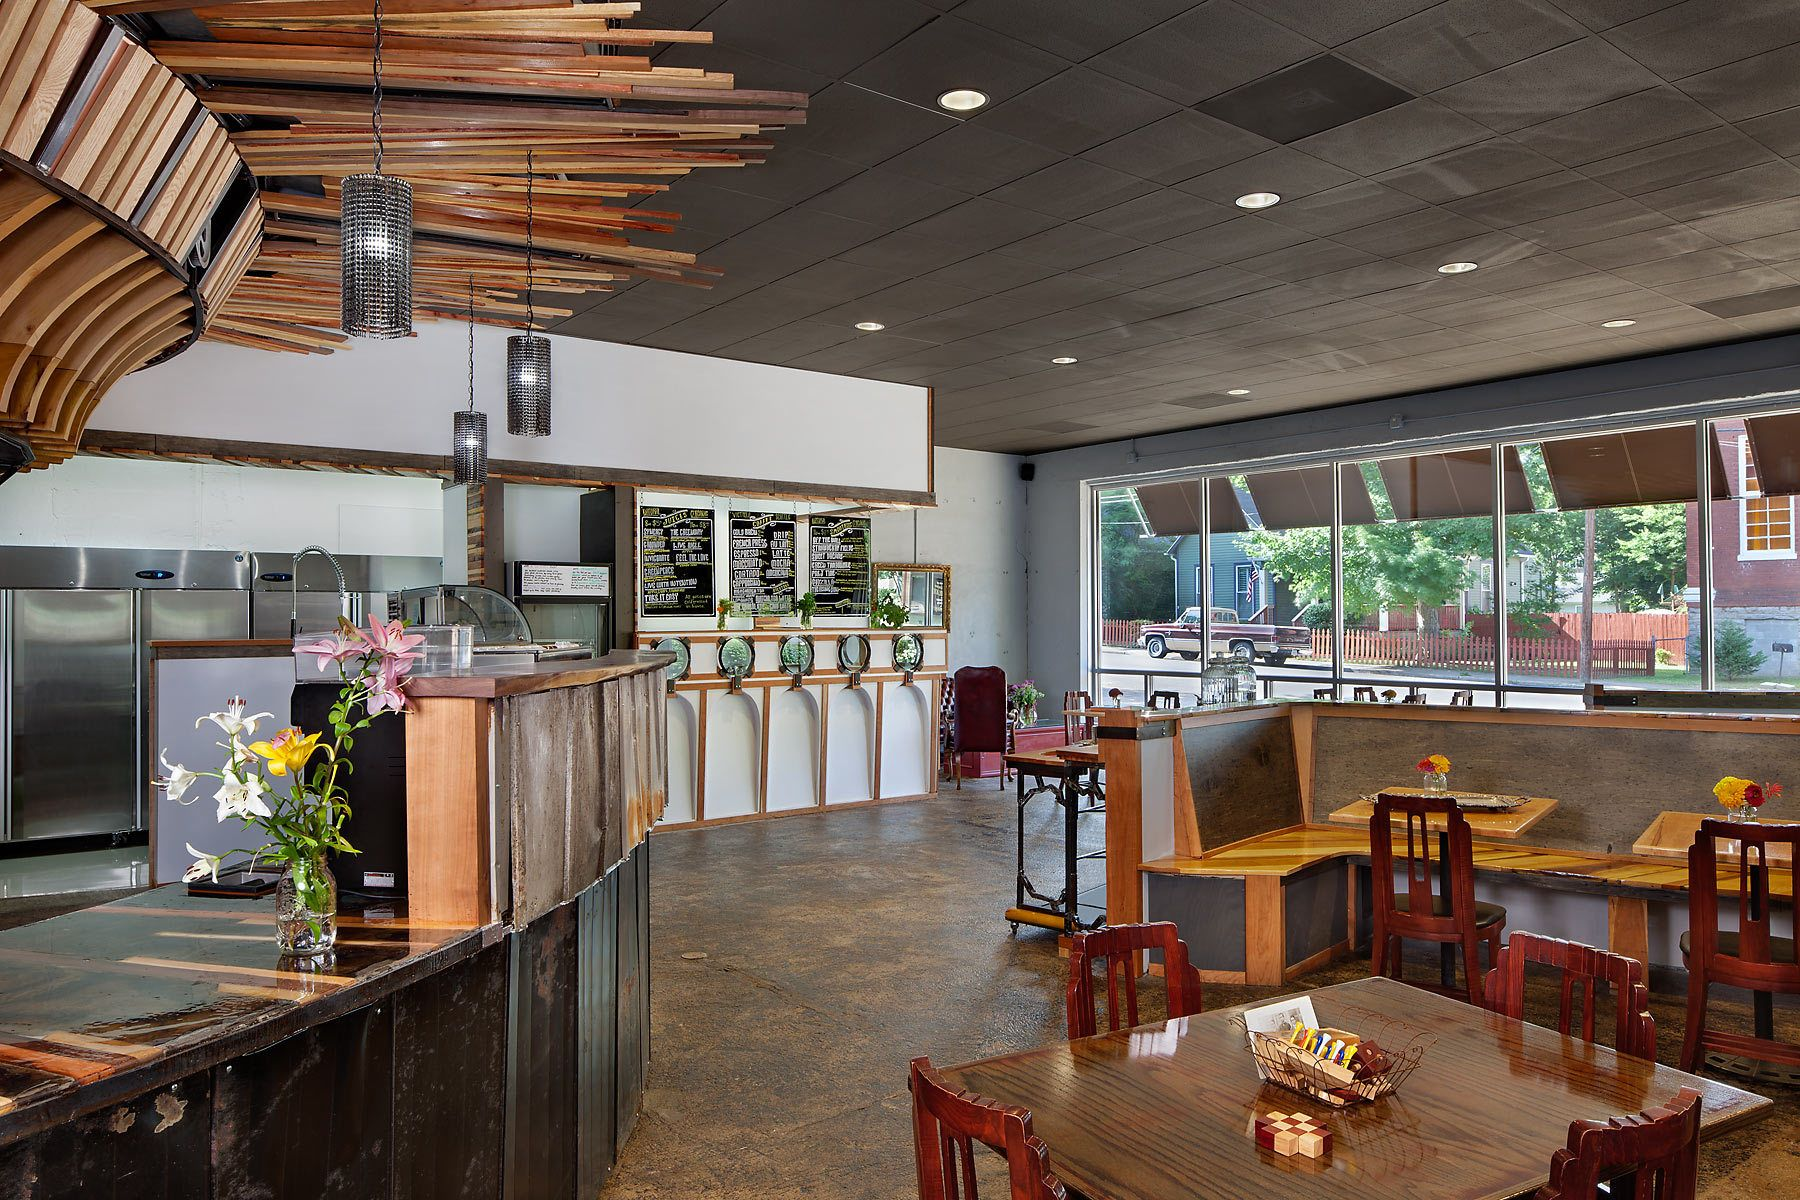 The Post East Coffee Shop | Nashville, TNGeneral Contractor - DWC Construction Company, Inc.